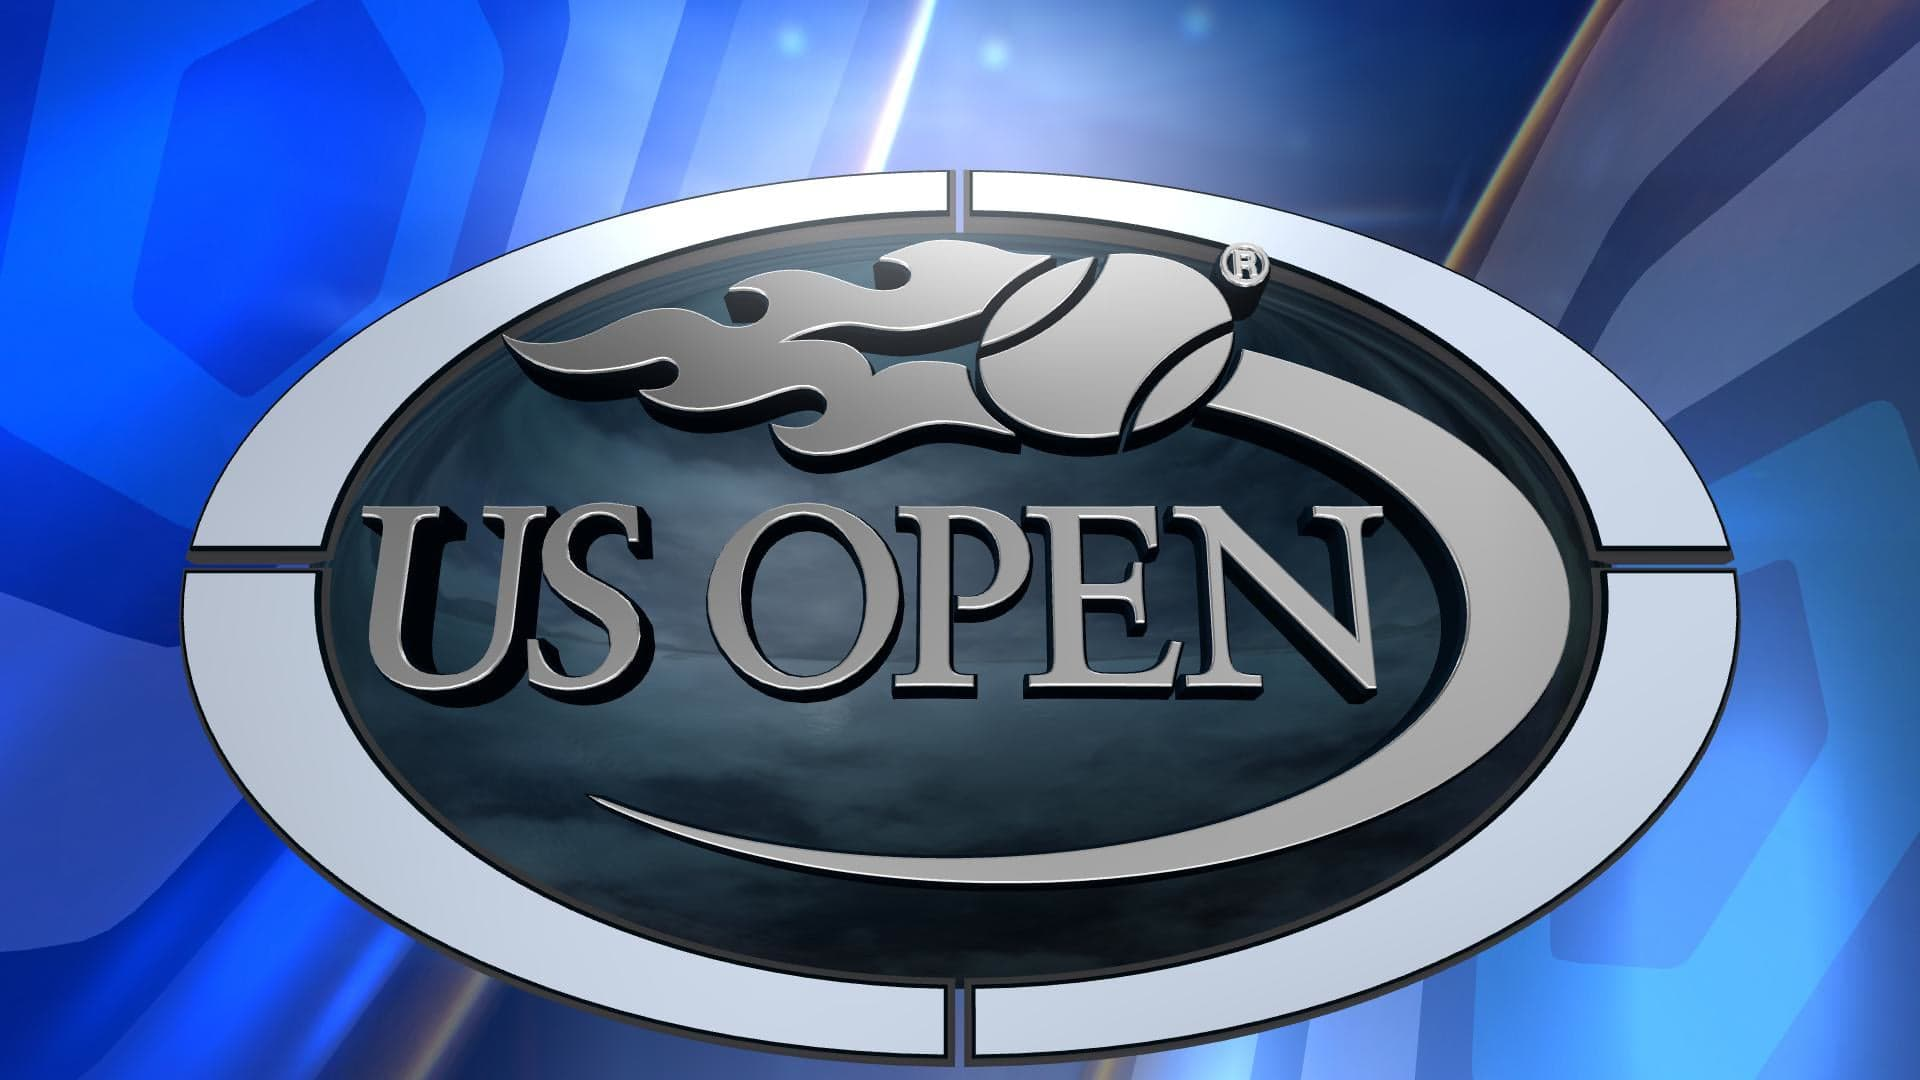 Girraphic 2013 Fox Sports US Open Tennis Touchscreen